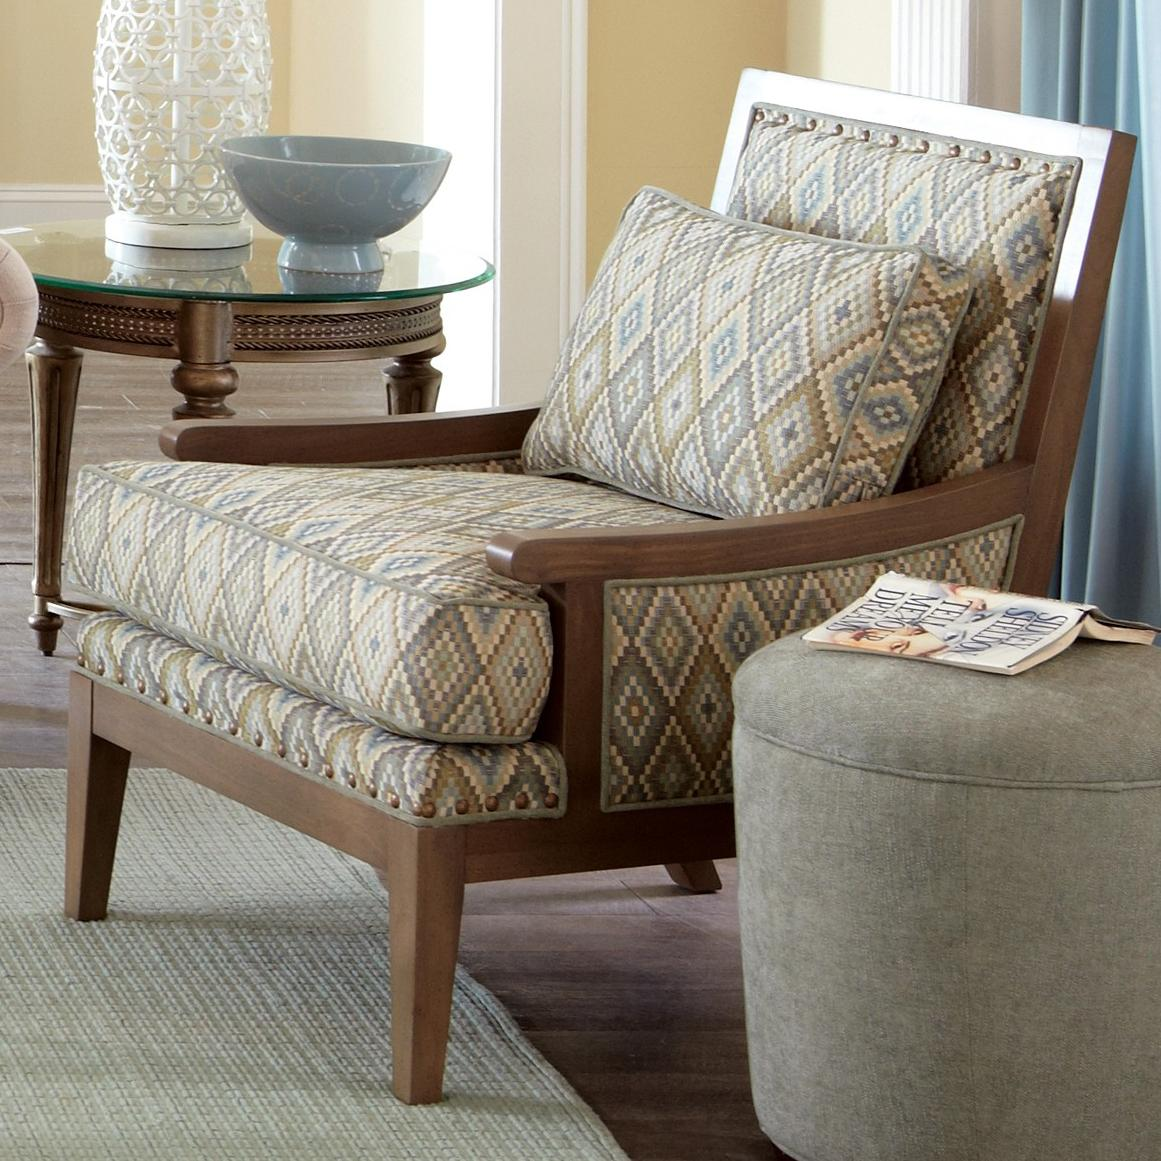 Accent chair contemporary - Contemporary Exposed Wood Accent Chair